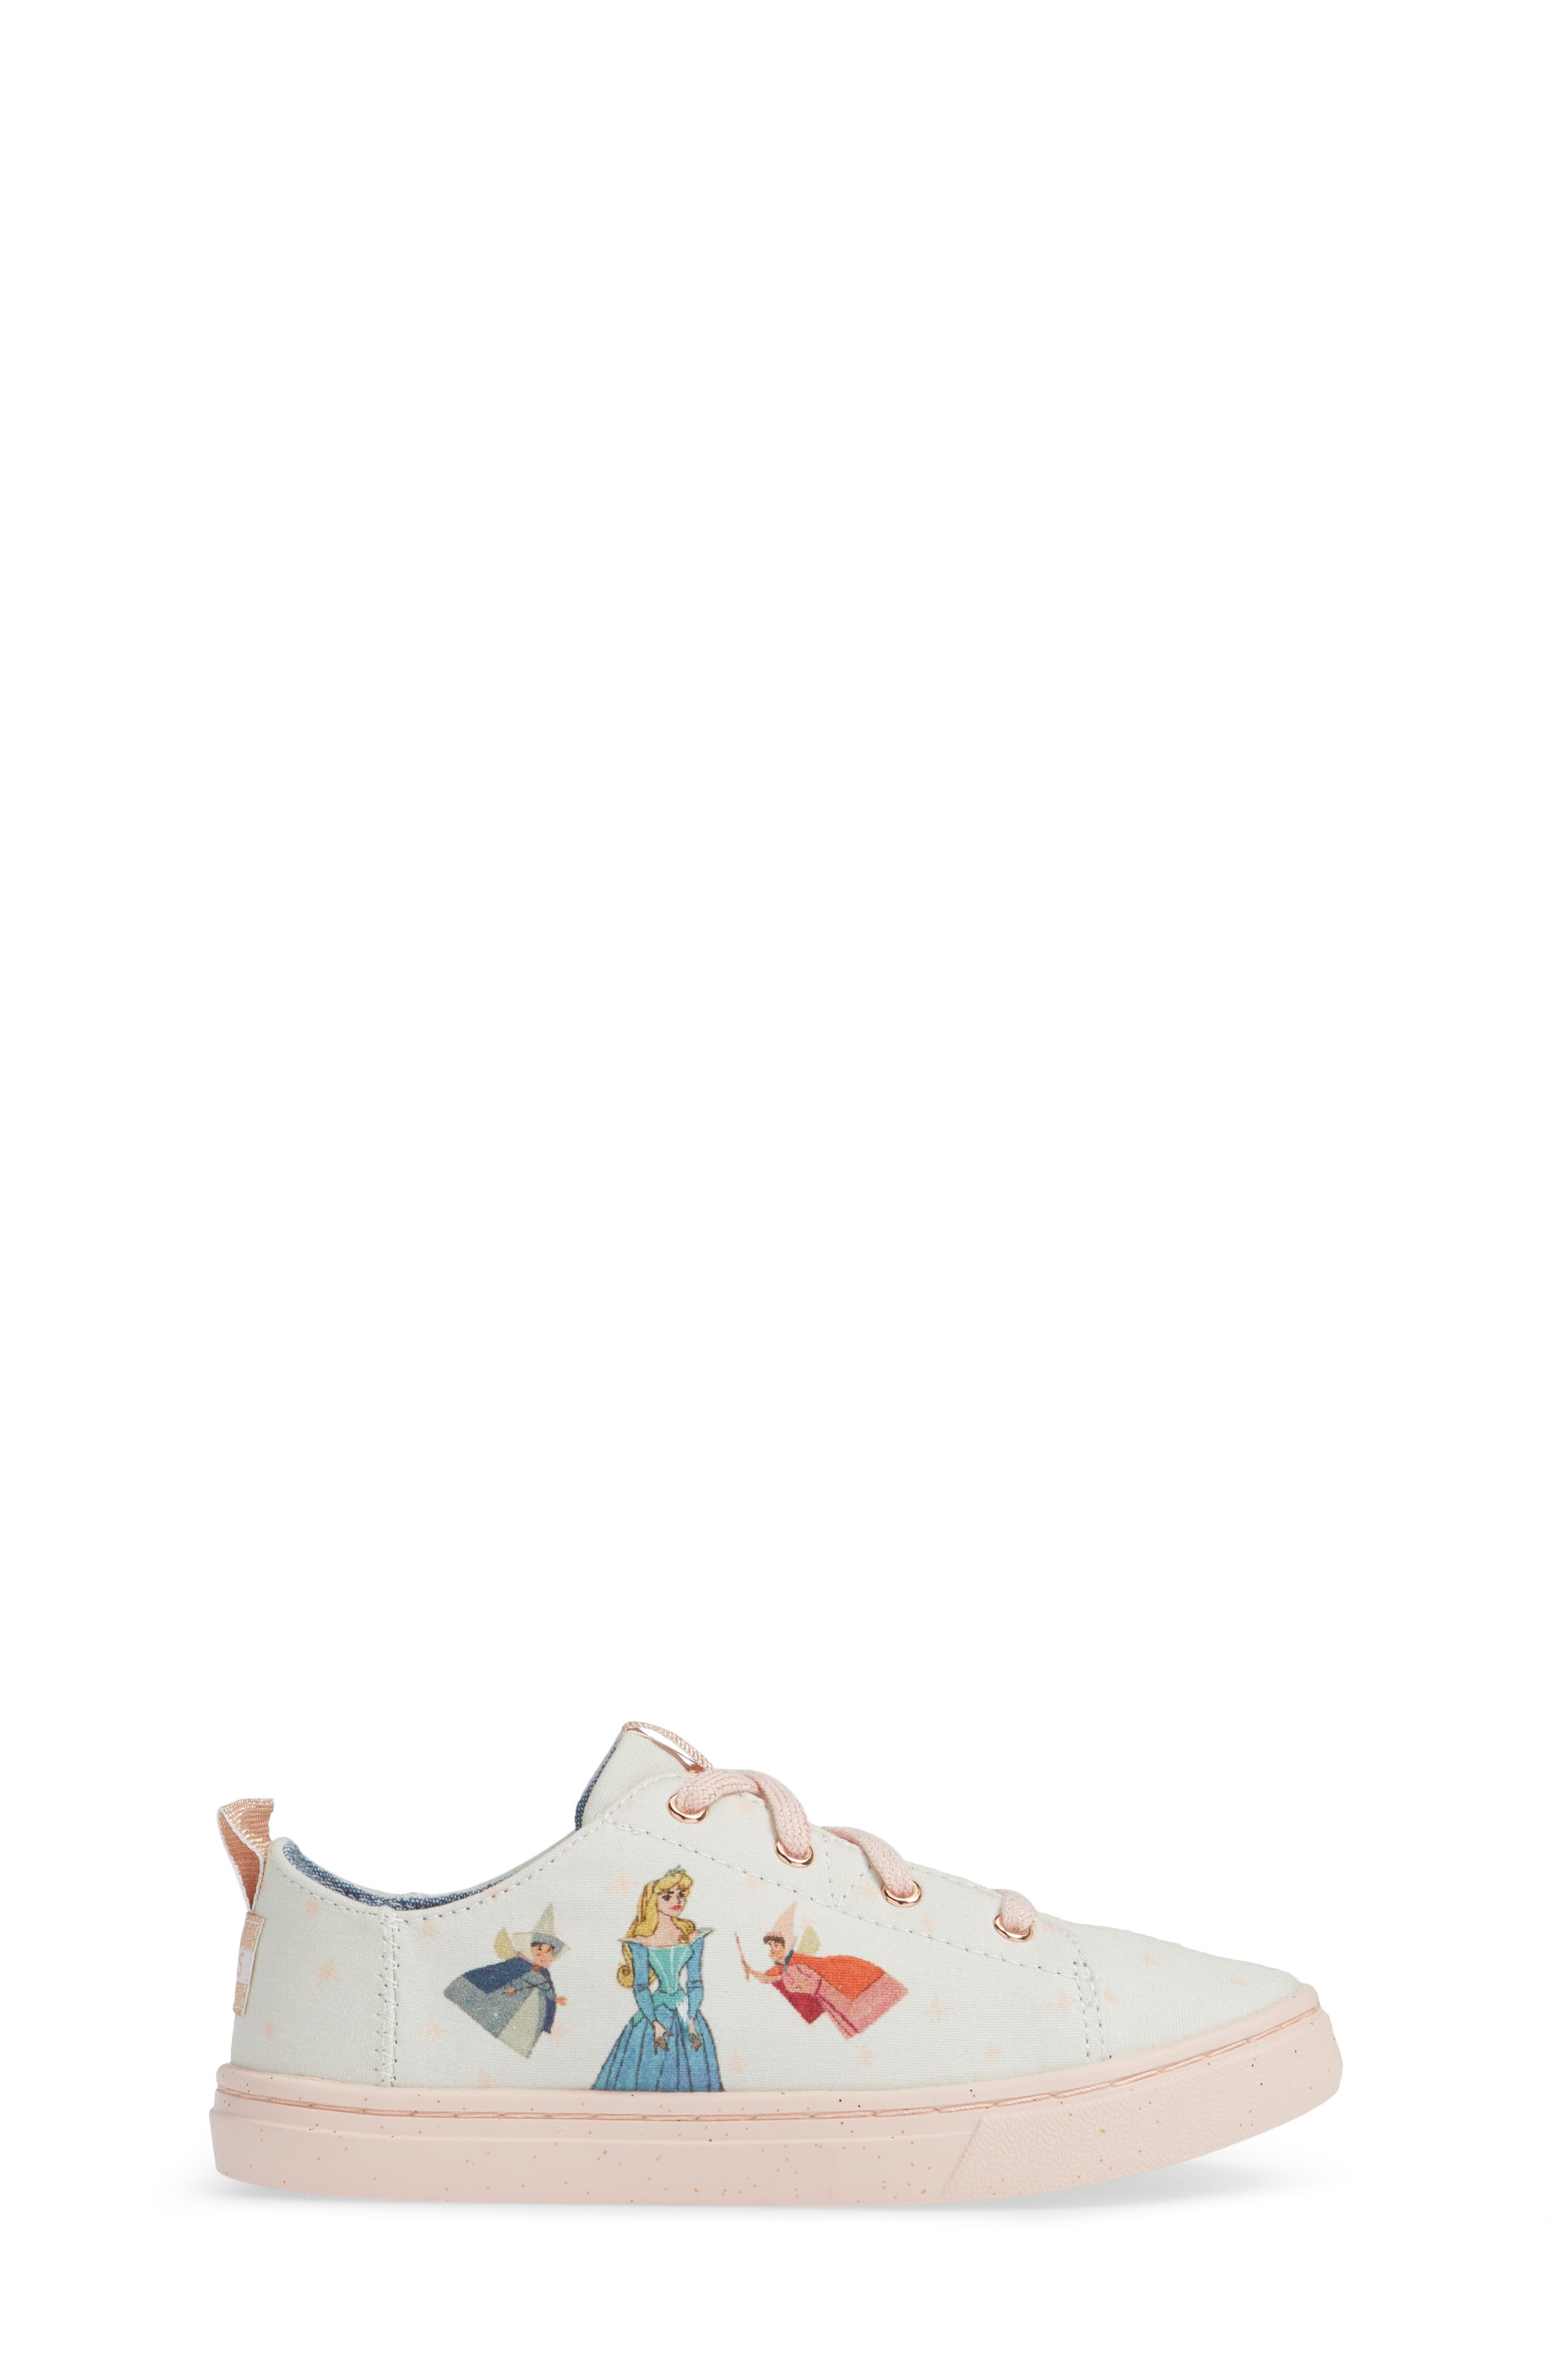 x Disney Lenny Low Top Sneaker,                             Alternate thumbnail 3, color,                             FAIRY GODMOTHER